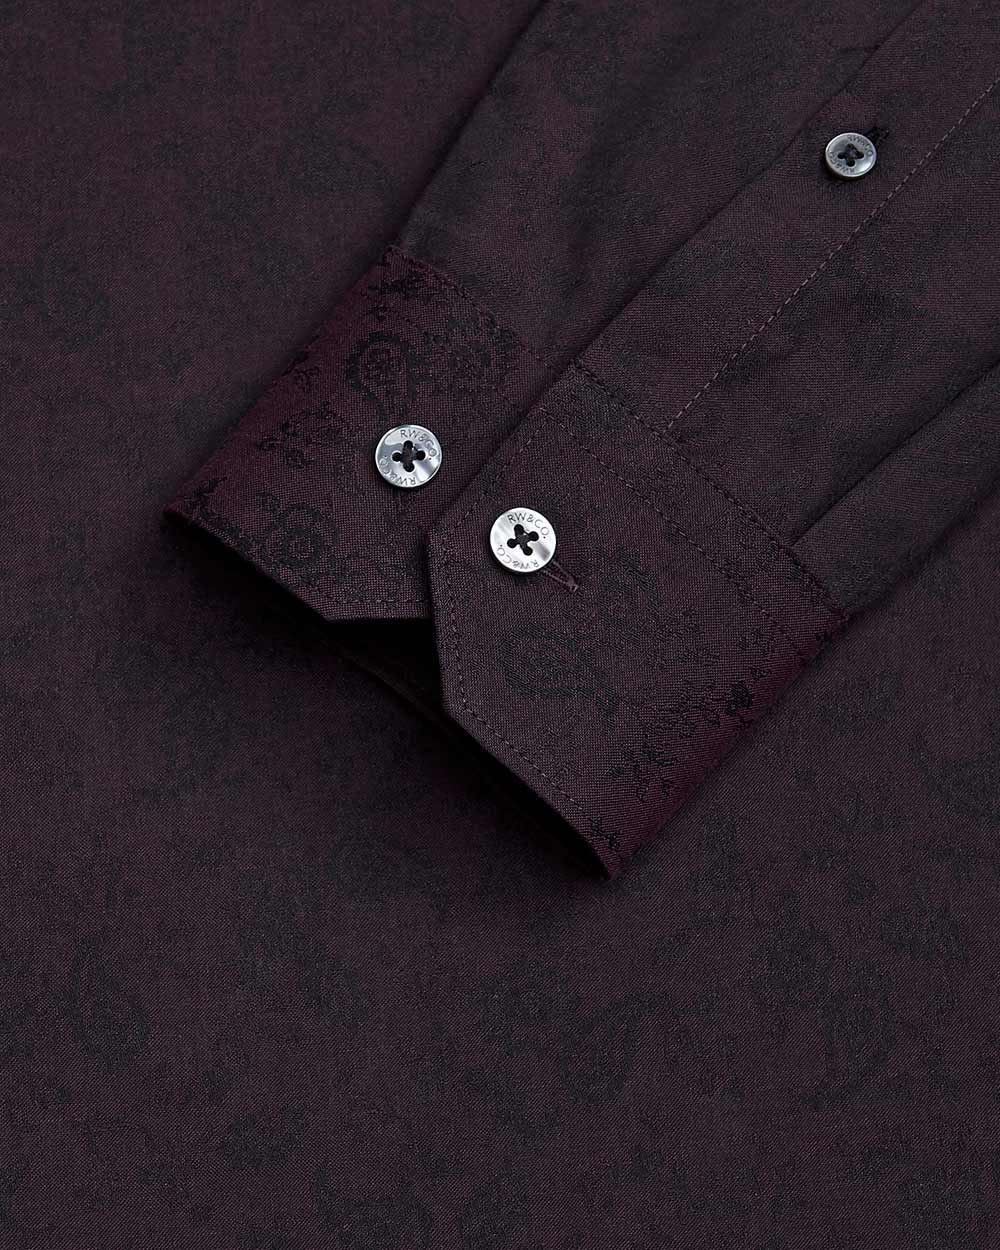 Tailored Fit tonal paisley dress shirt